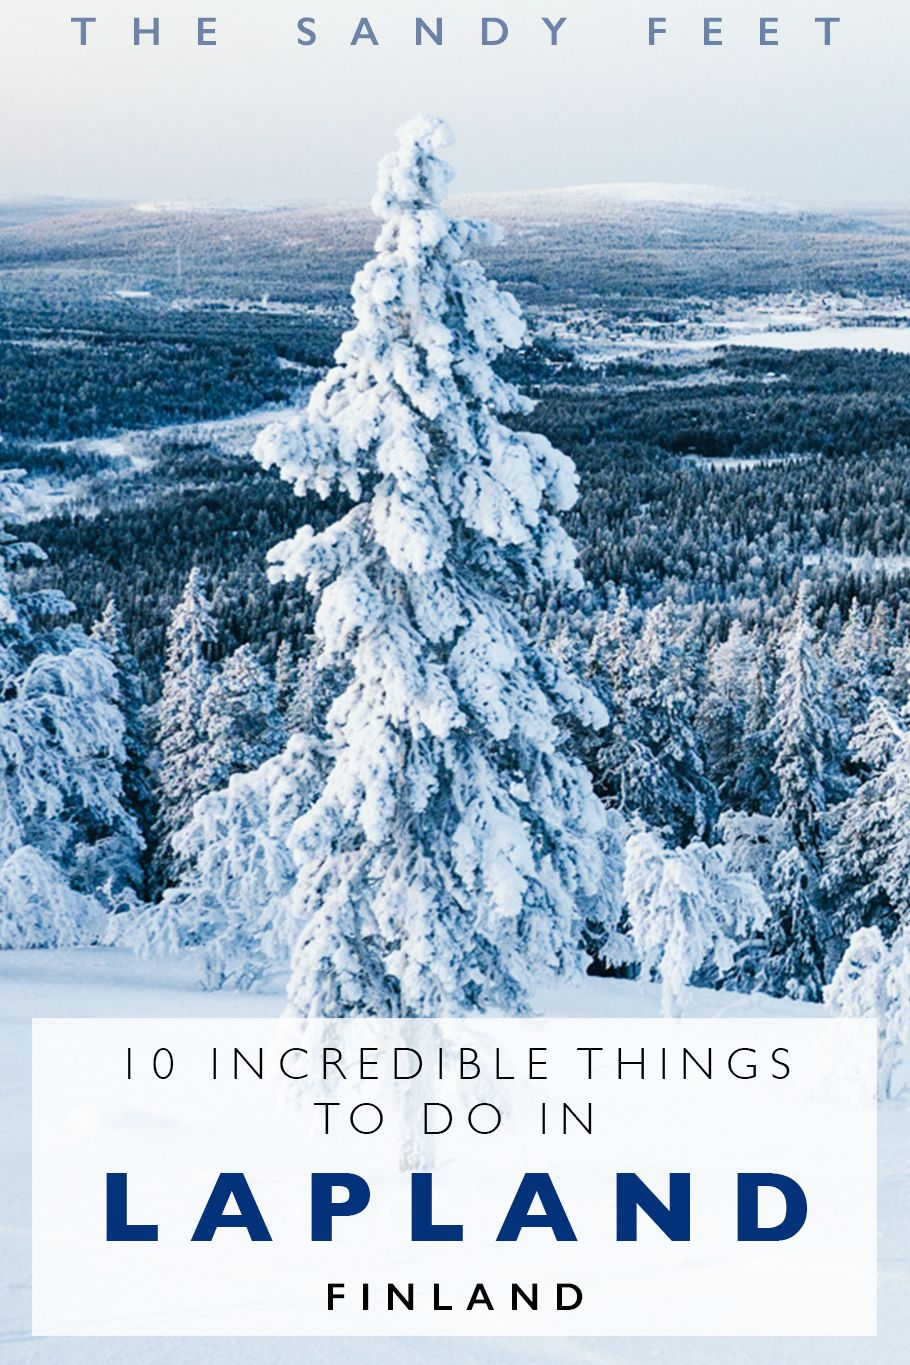 10 Wonderful Things To Do In Lapland In Winter Finland The Sandy Feet Finland Travel Europe Travel Winter Travel Destinations